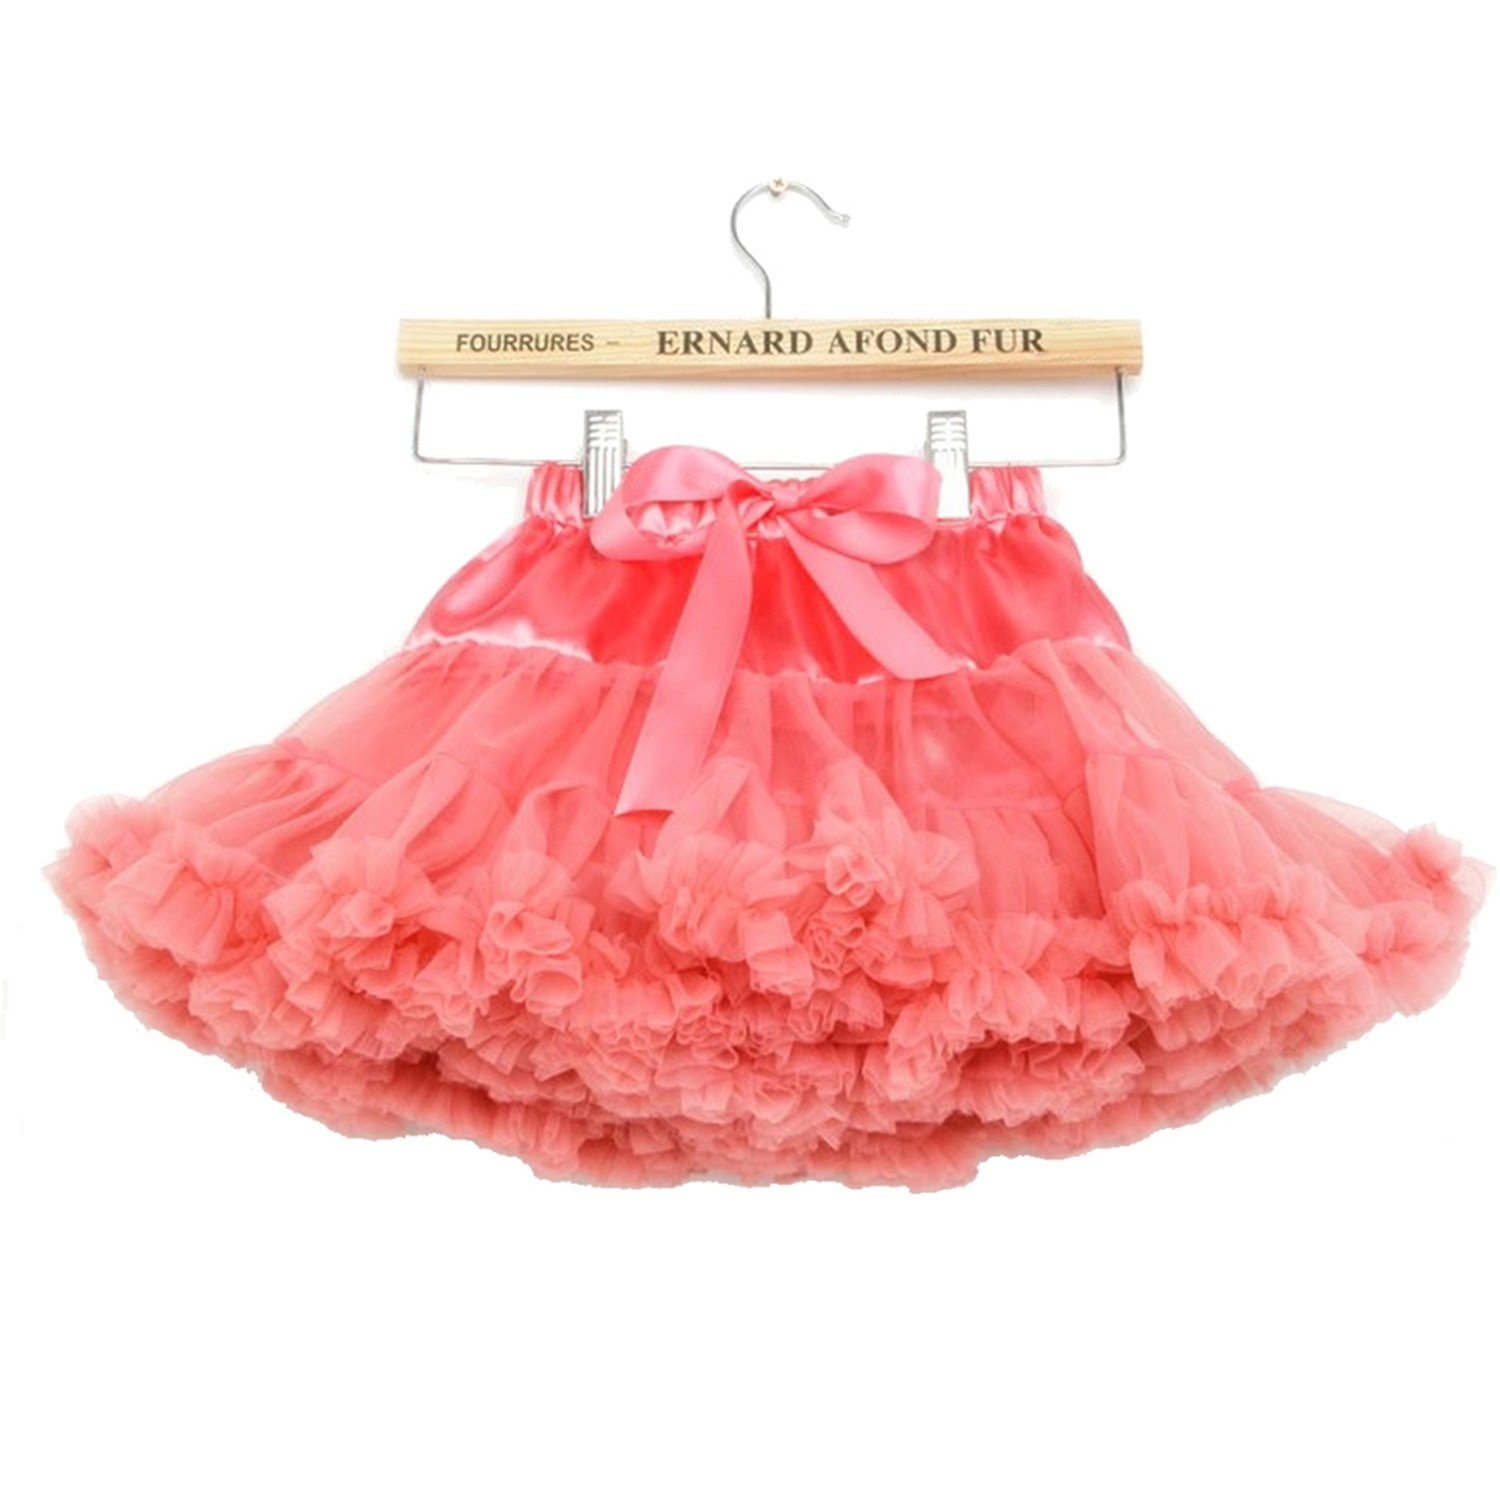 storeofbaby Girls Solid Color Fluffy Tutu Skirt Ruffle Tiered Pettiskirt,5-7Years/M,Coralred by storeofbaby